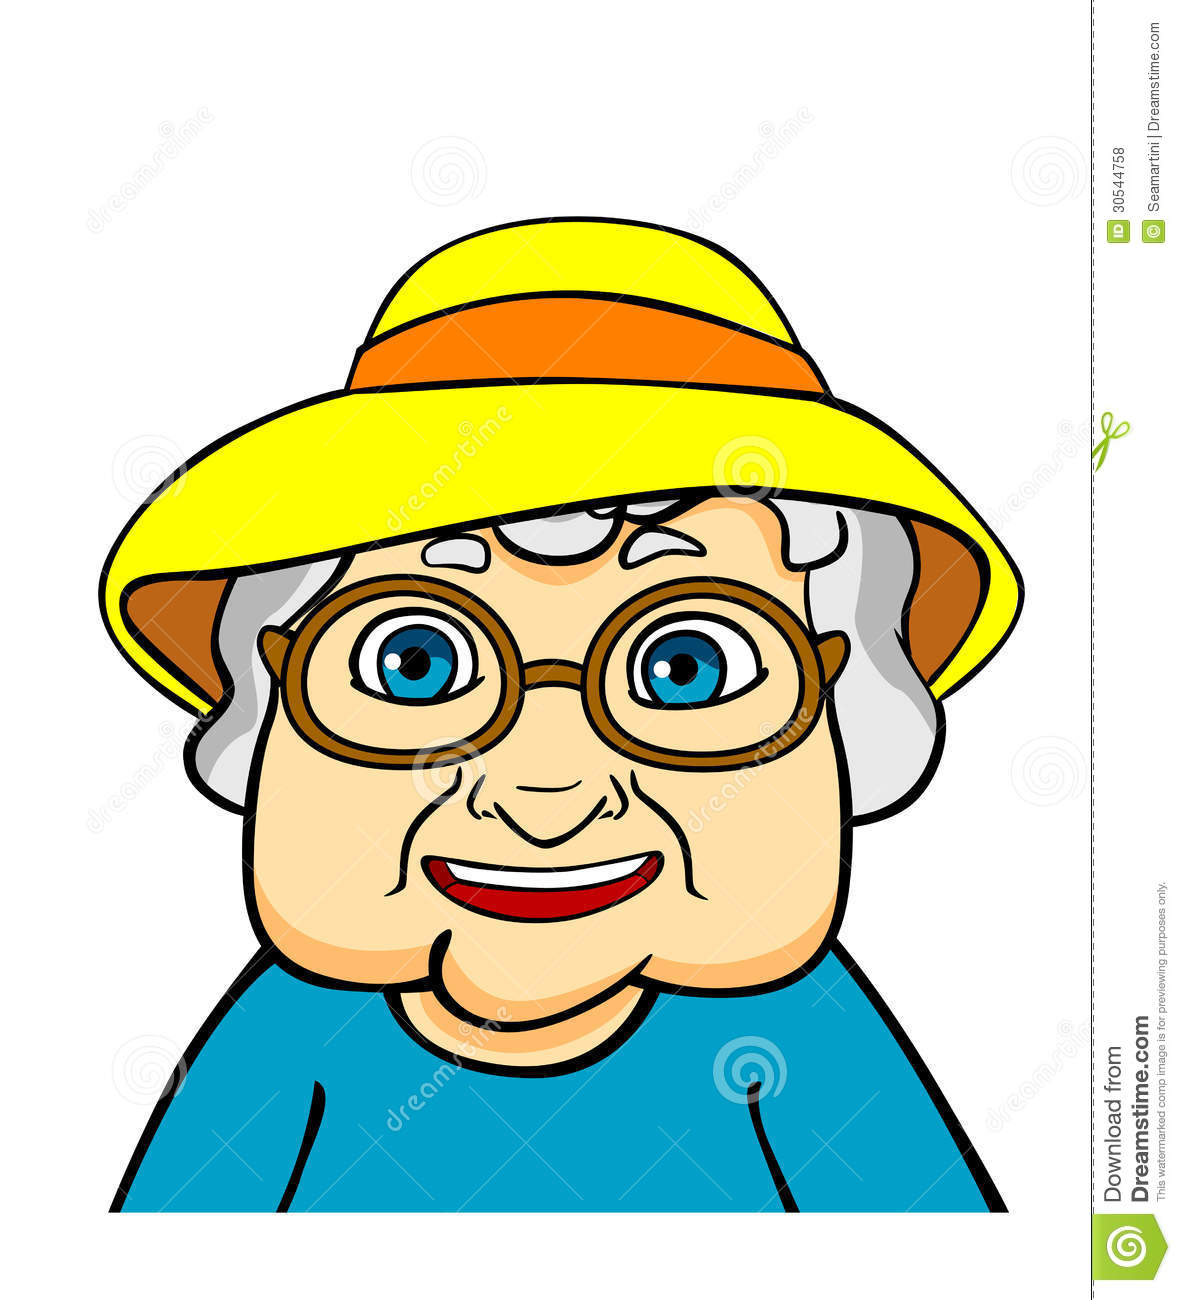 Old grandmother stock vector. Illustration of cartoon ...